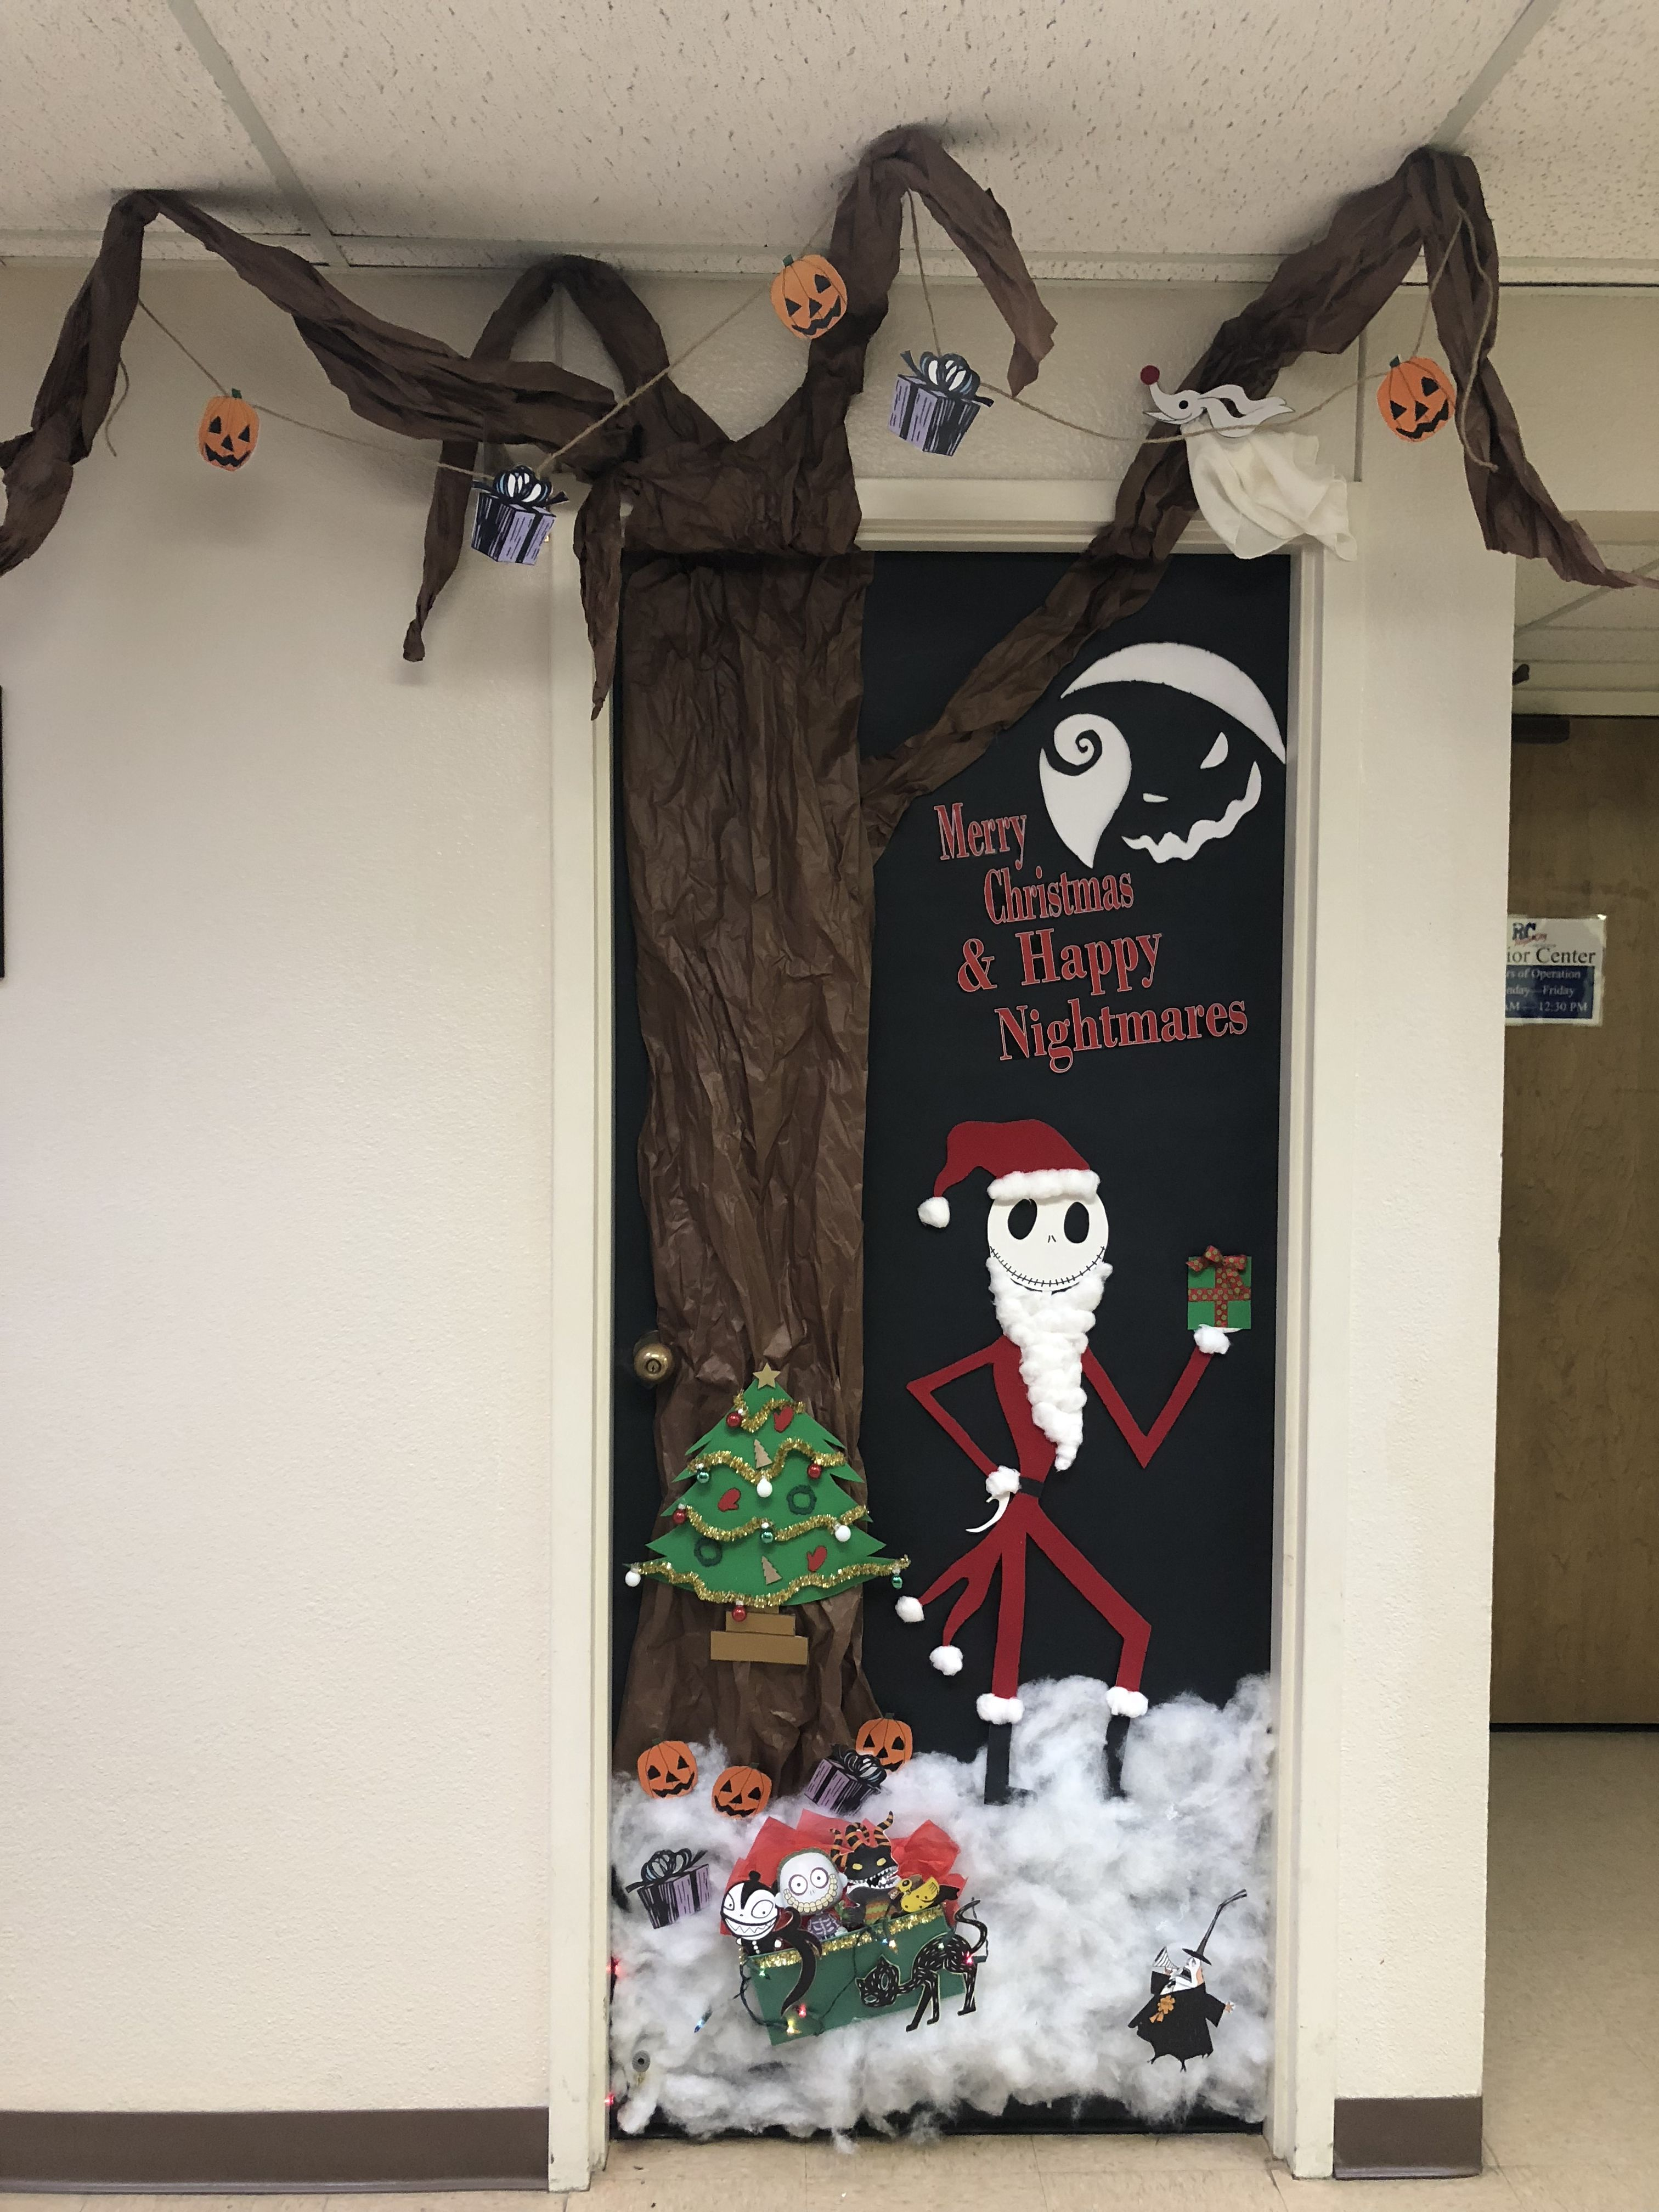 Door Decorating Contest Nightmare Before Christmas Nightmare Before Christmas Decorations Classroom Christmas Decorations Christmas Door Decorating Contest